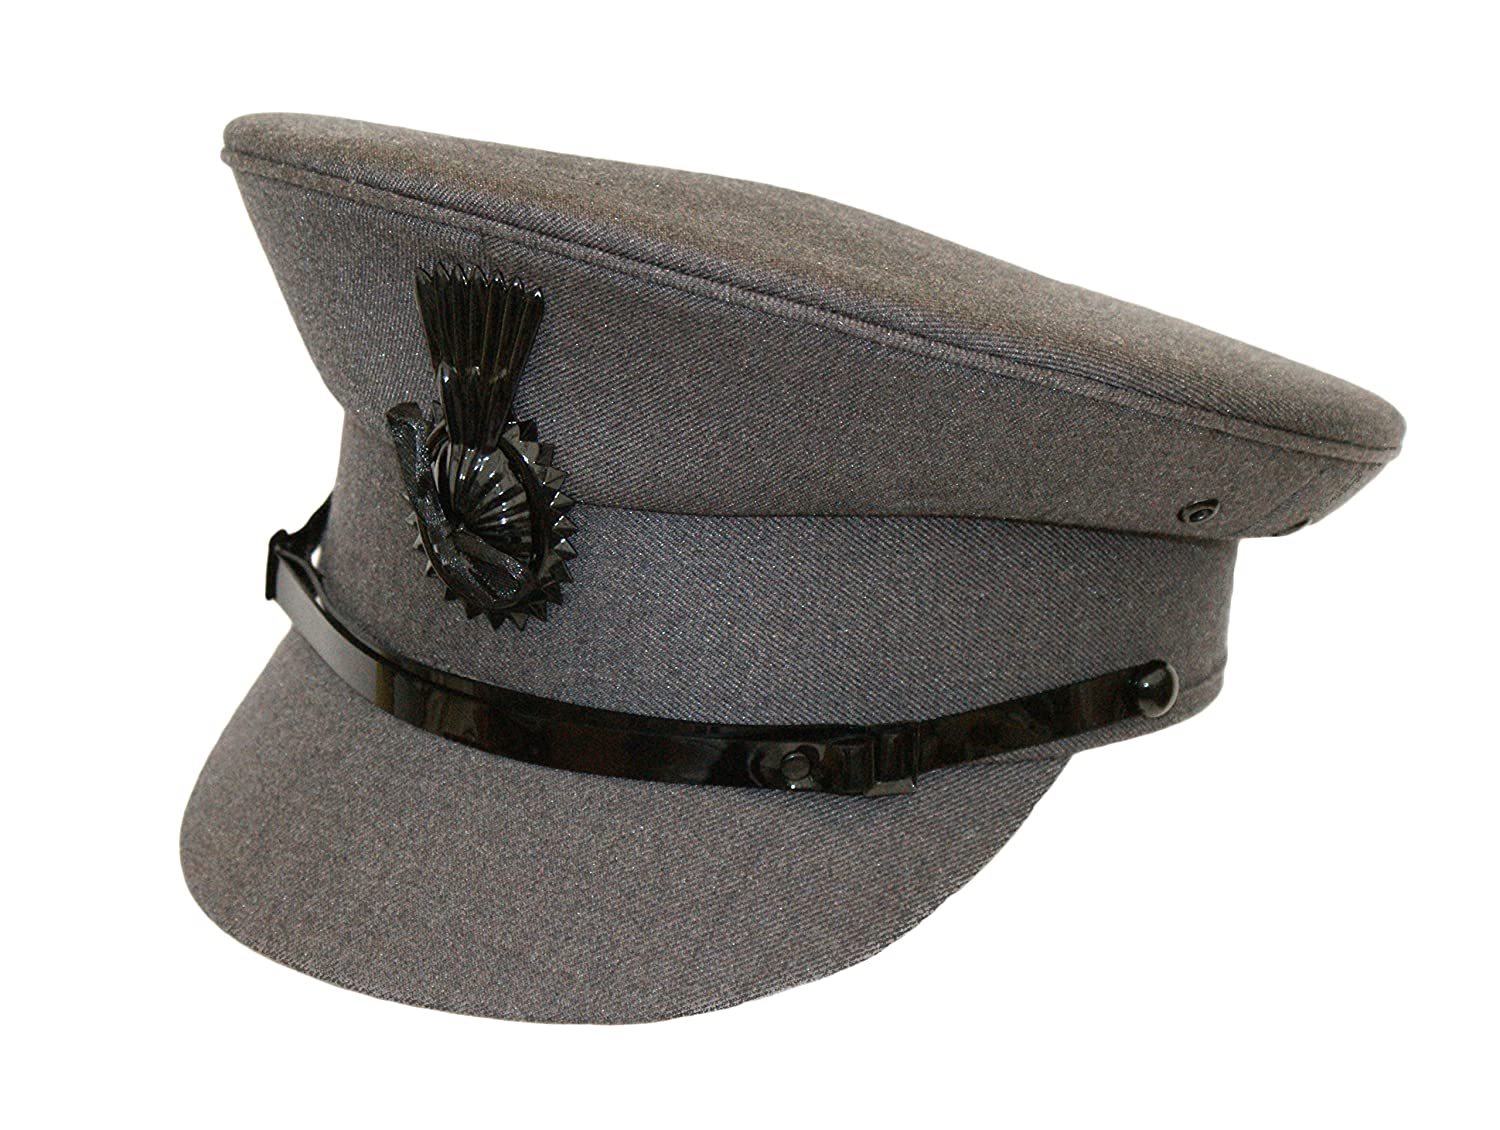 Mens leather gloves amazon uk - Chauffeurs Driver Cap With Cockade Men S Formal Traditional Satin Lined Hat